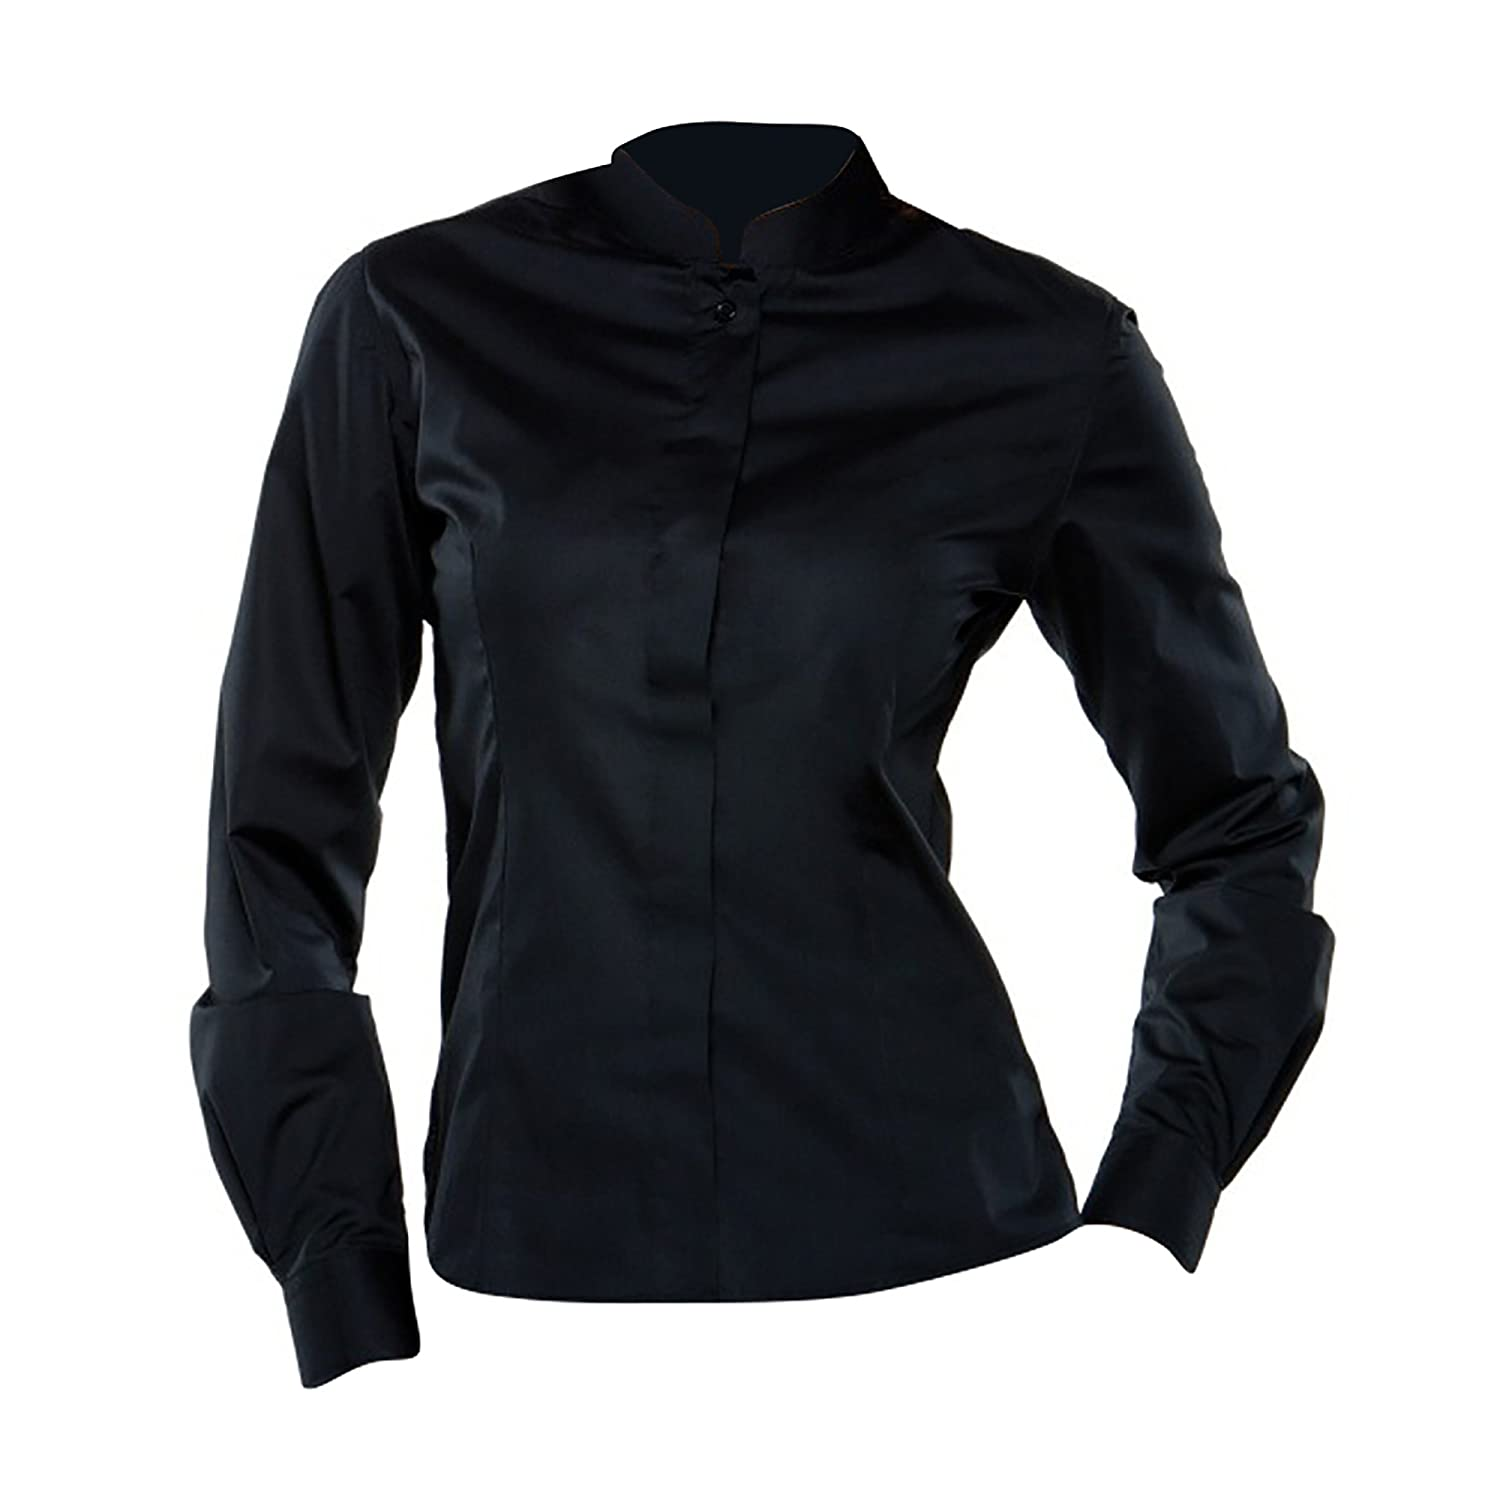 BARGEAR Ladies Long Sleeved Mandarin Collar Bar Shirt